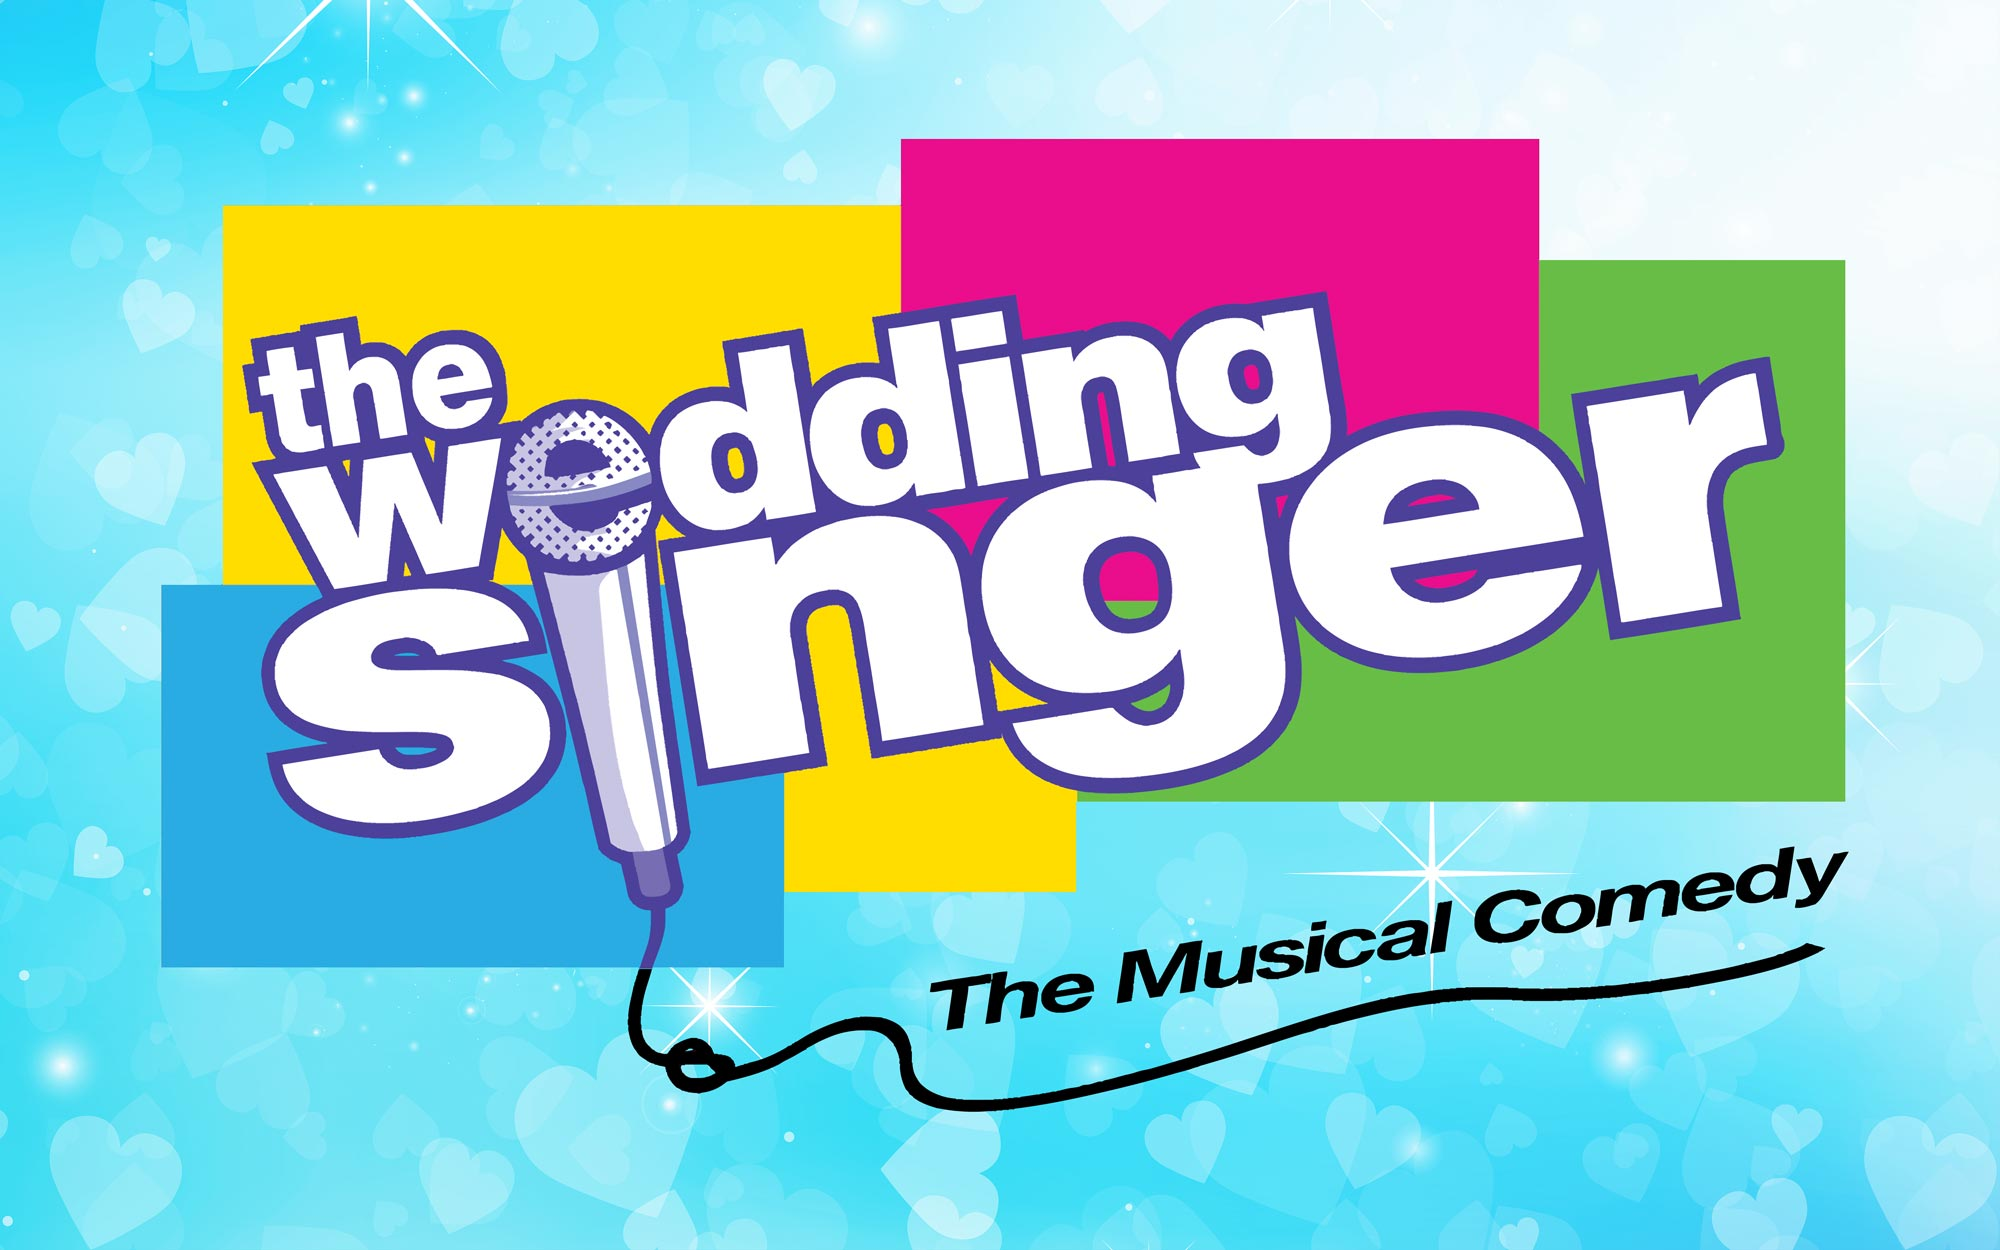 "<p style=""font-size:16px""><i>The Wedding Singer</style></i>"